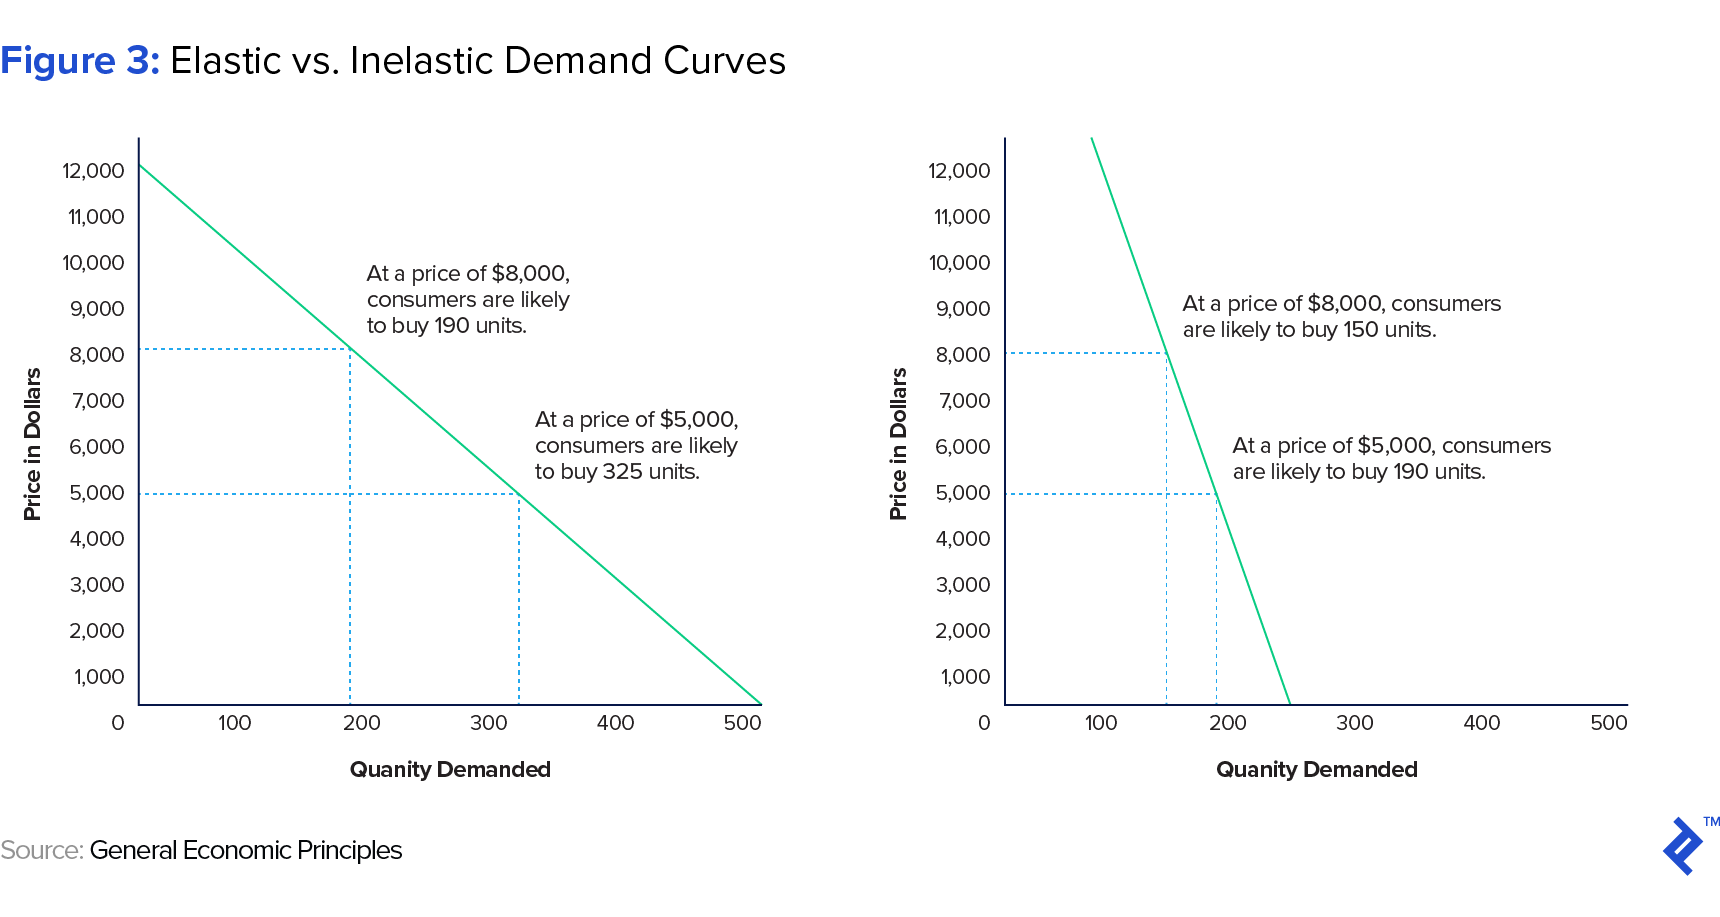 Figure 3: Elastiv vs. Inelastic Demand Curves